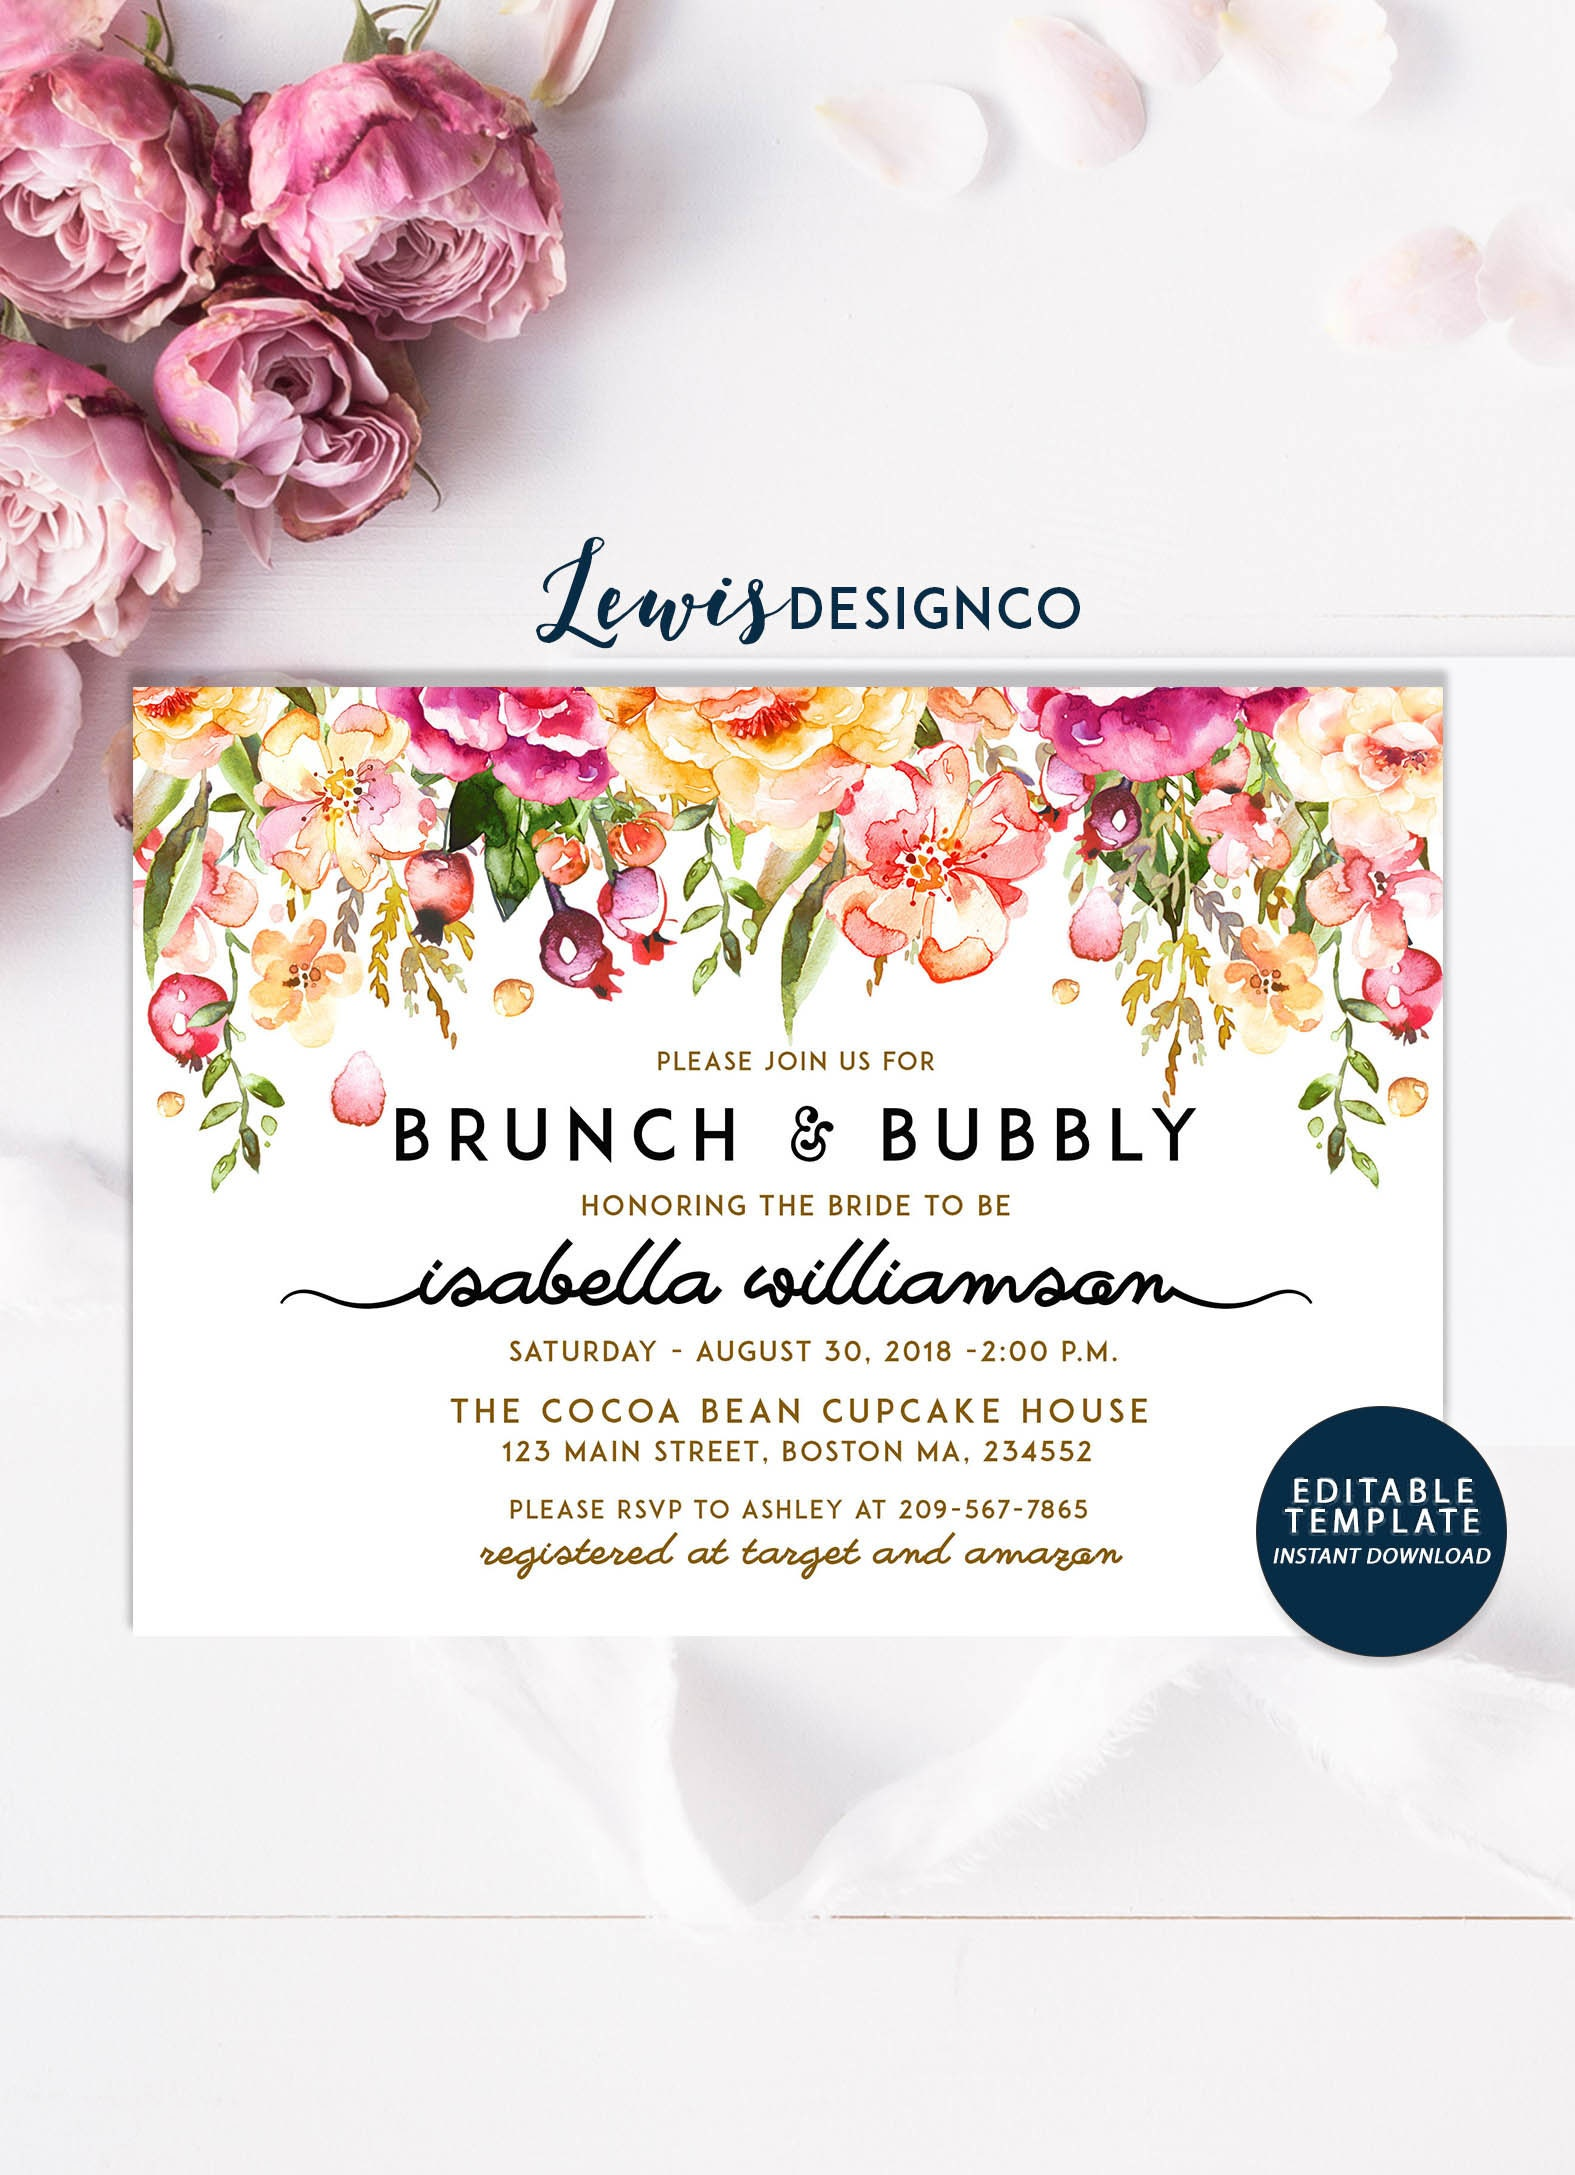 Brunch and Bubbly Invitation Floral Bridal Shower Invite